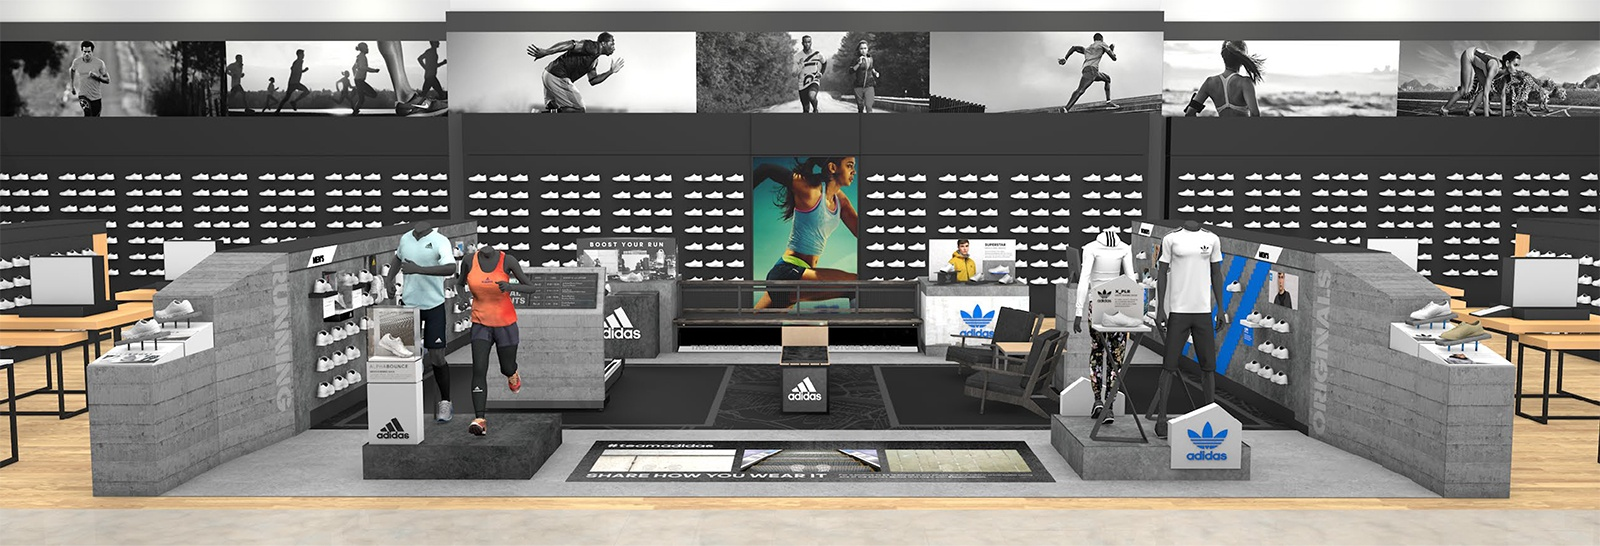 A rendered view of the entire area The Bernard Group designed for Adidas to live within a larger sporting goods retailer.